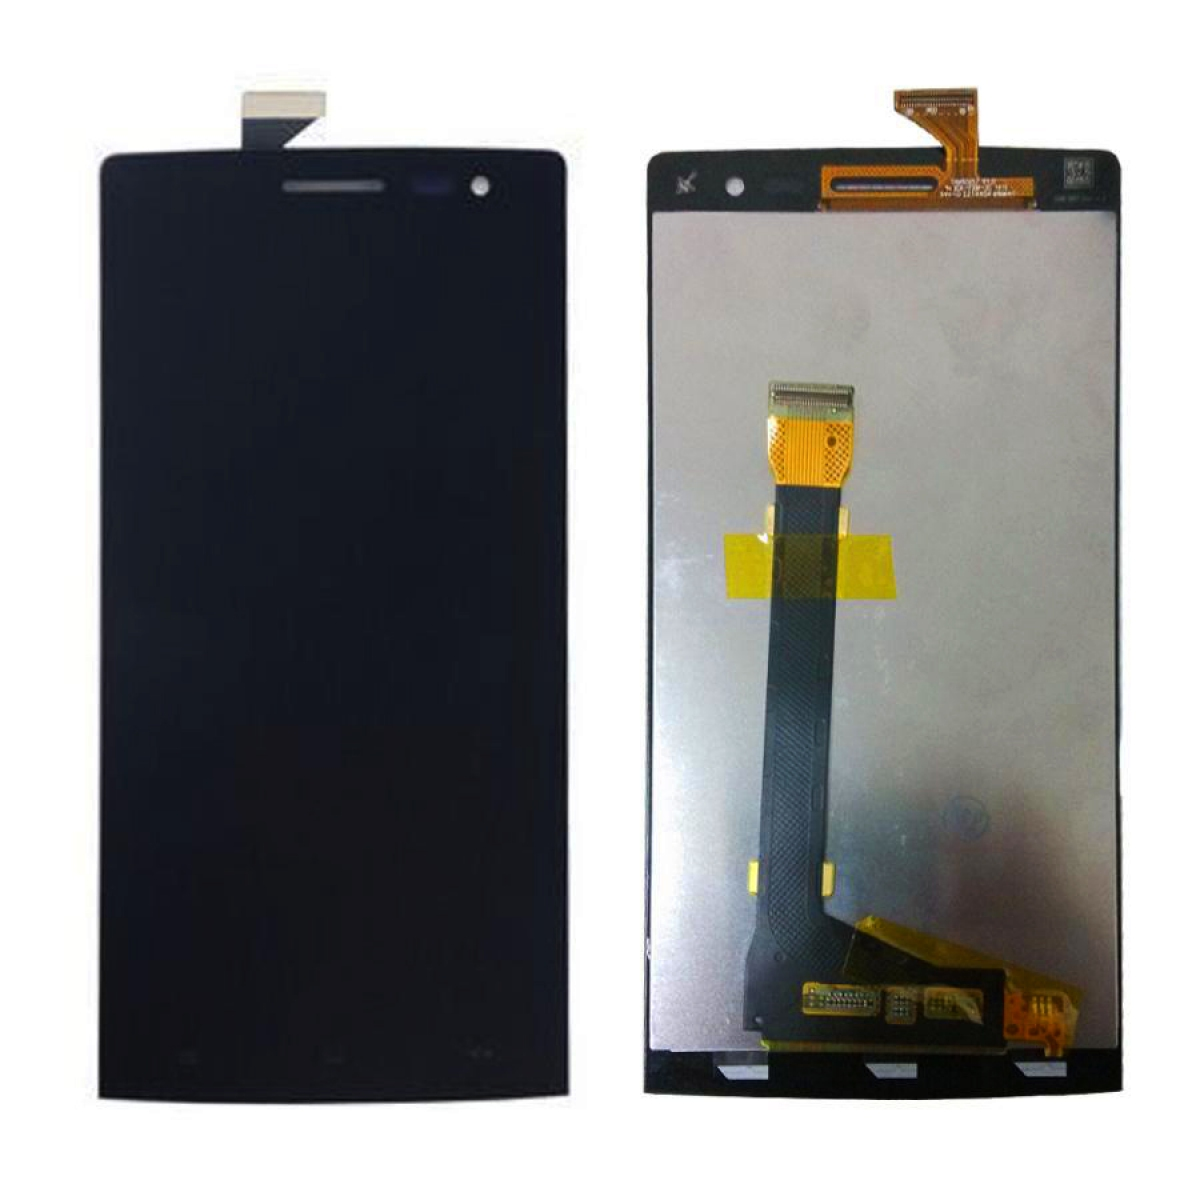 BSS Oppo Find 7 X9076 Lcd + Touch Screen Digitizer Sparepart